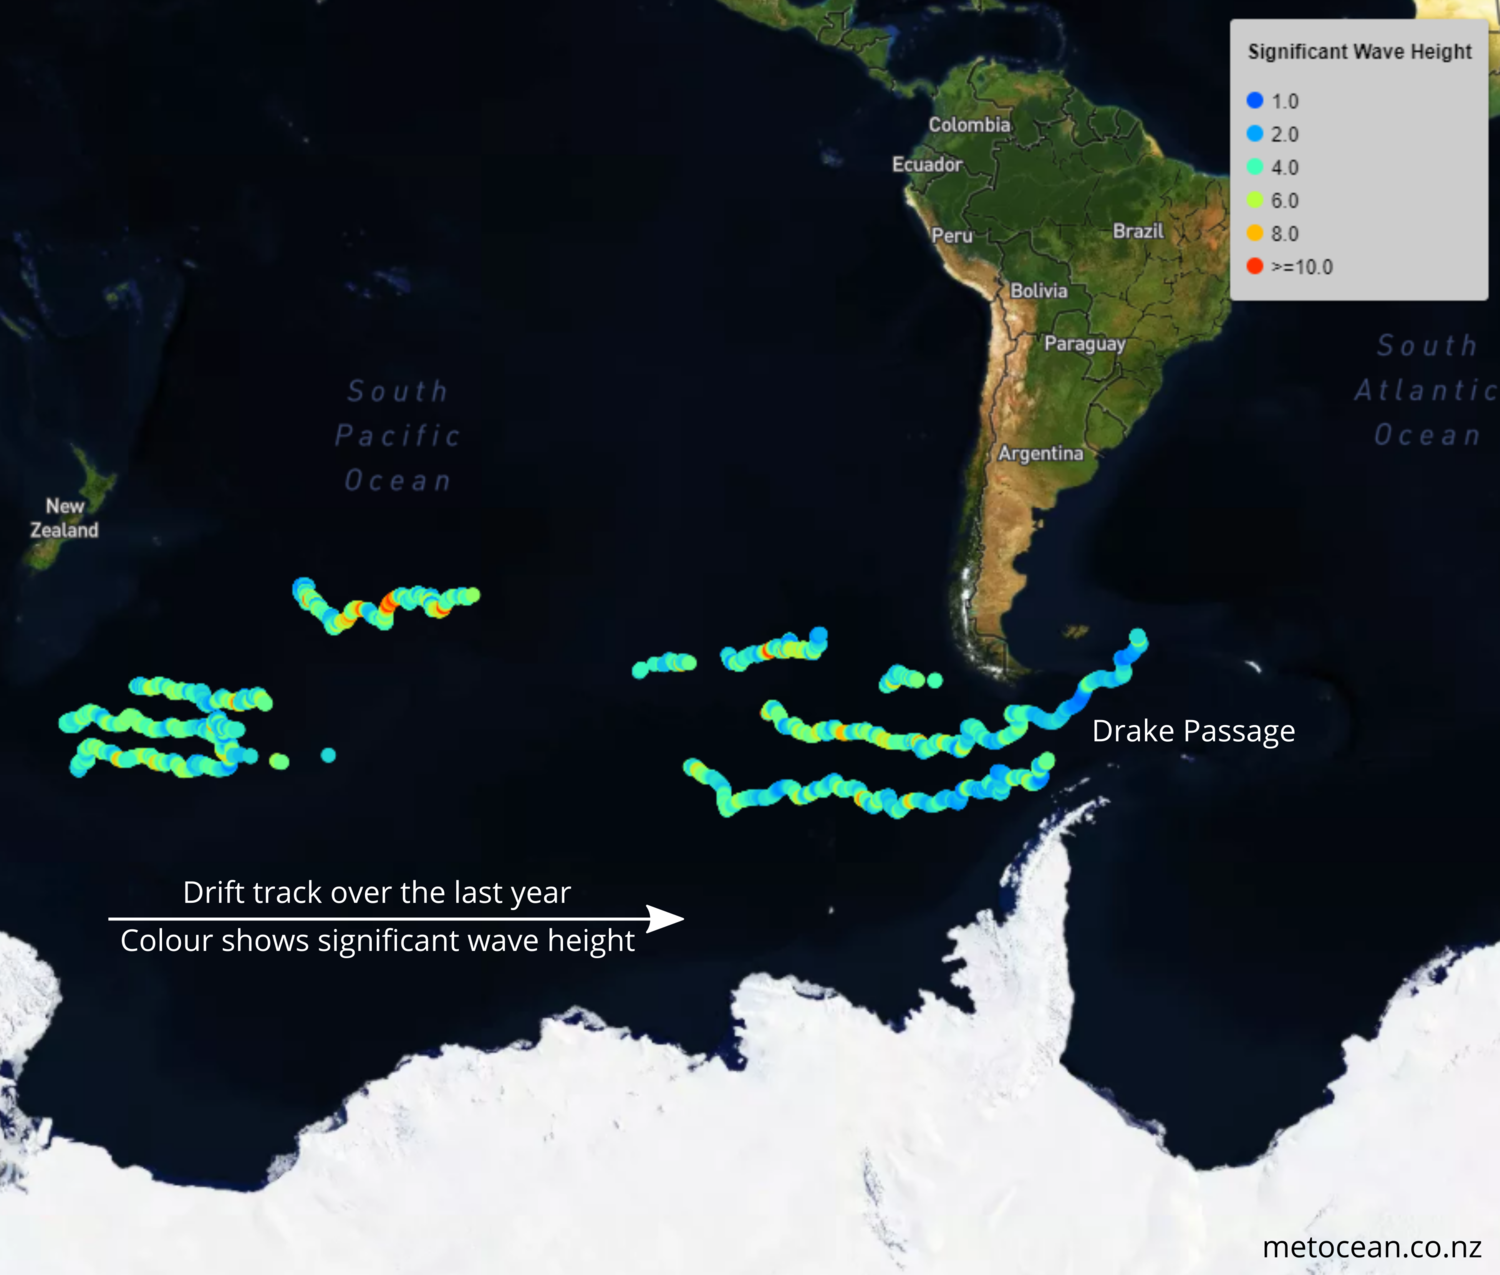 DRIFT TRACK AND SIGNIFICANT WAVE HEIGHTS MEASURED OVER THE LAST year.